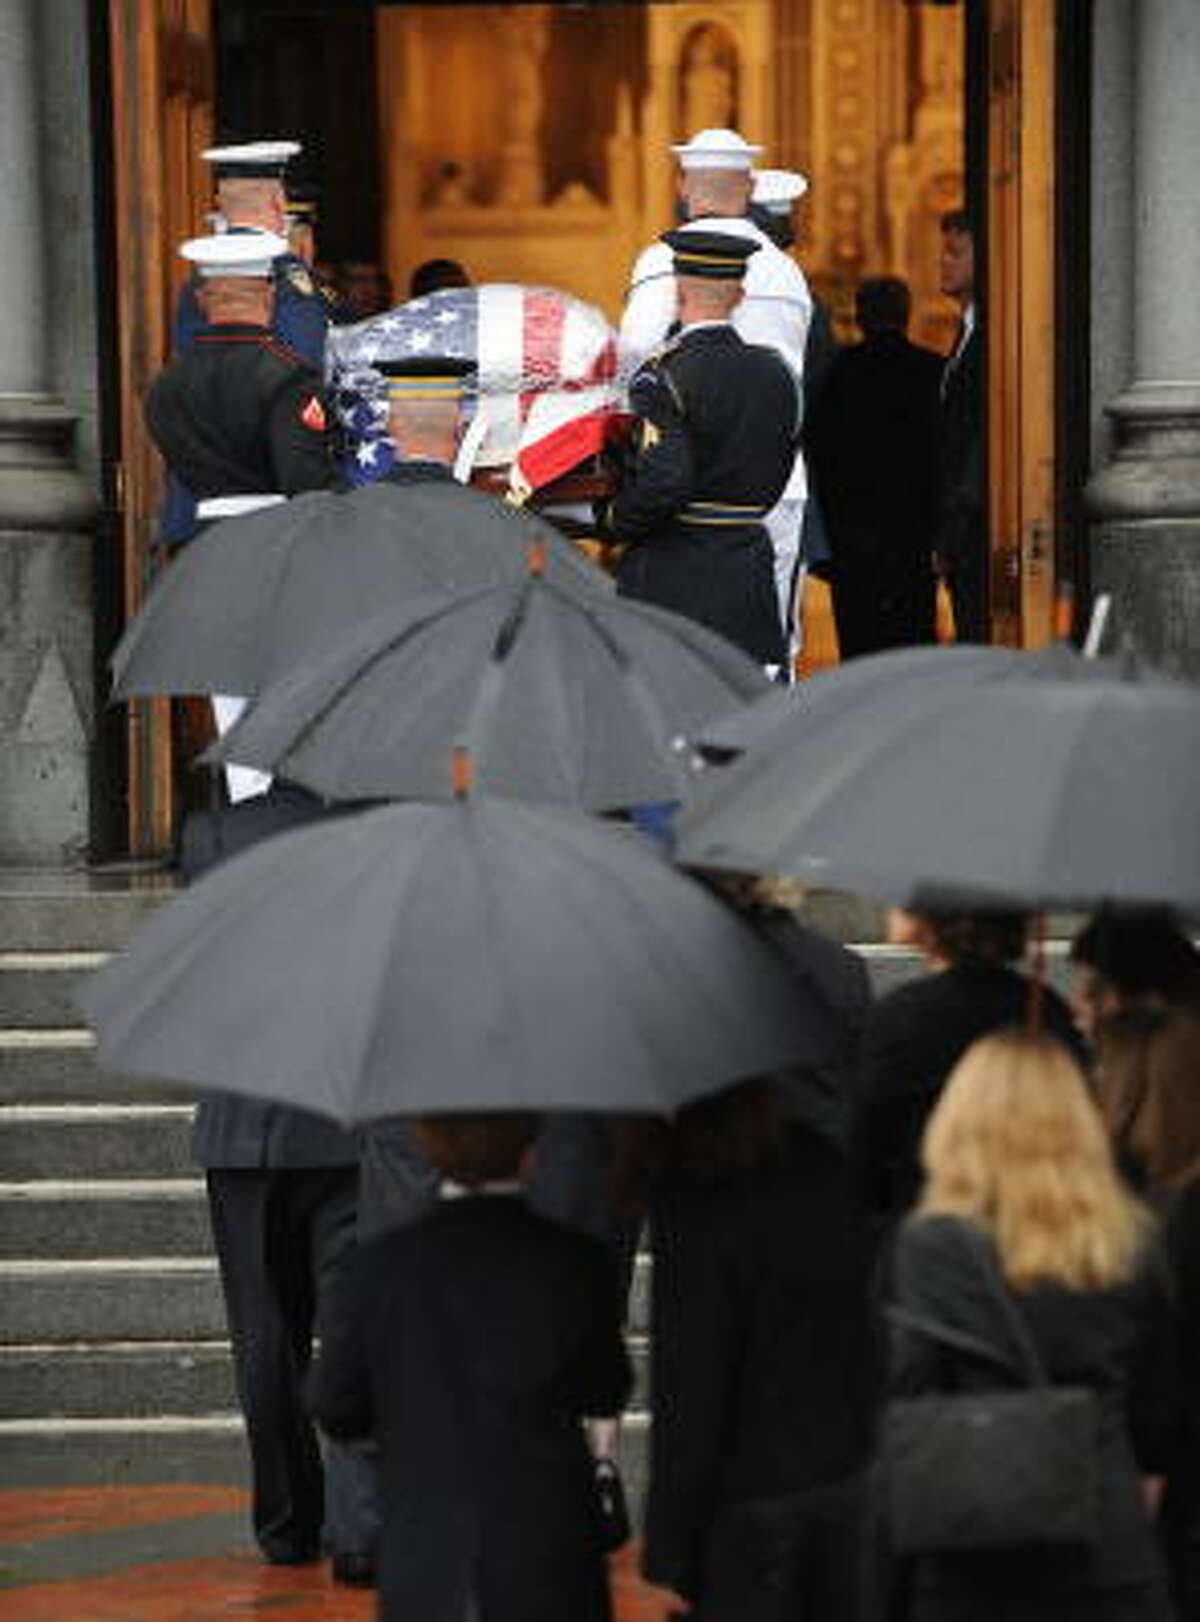 Family members follow the coffin into the service.